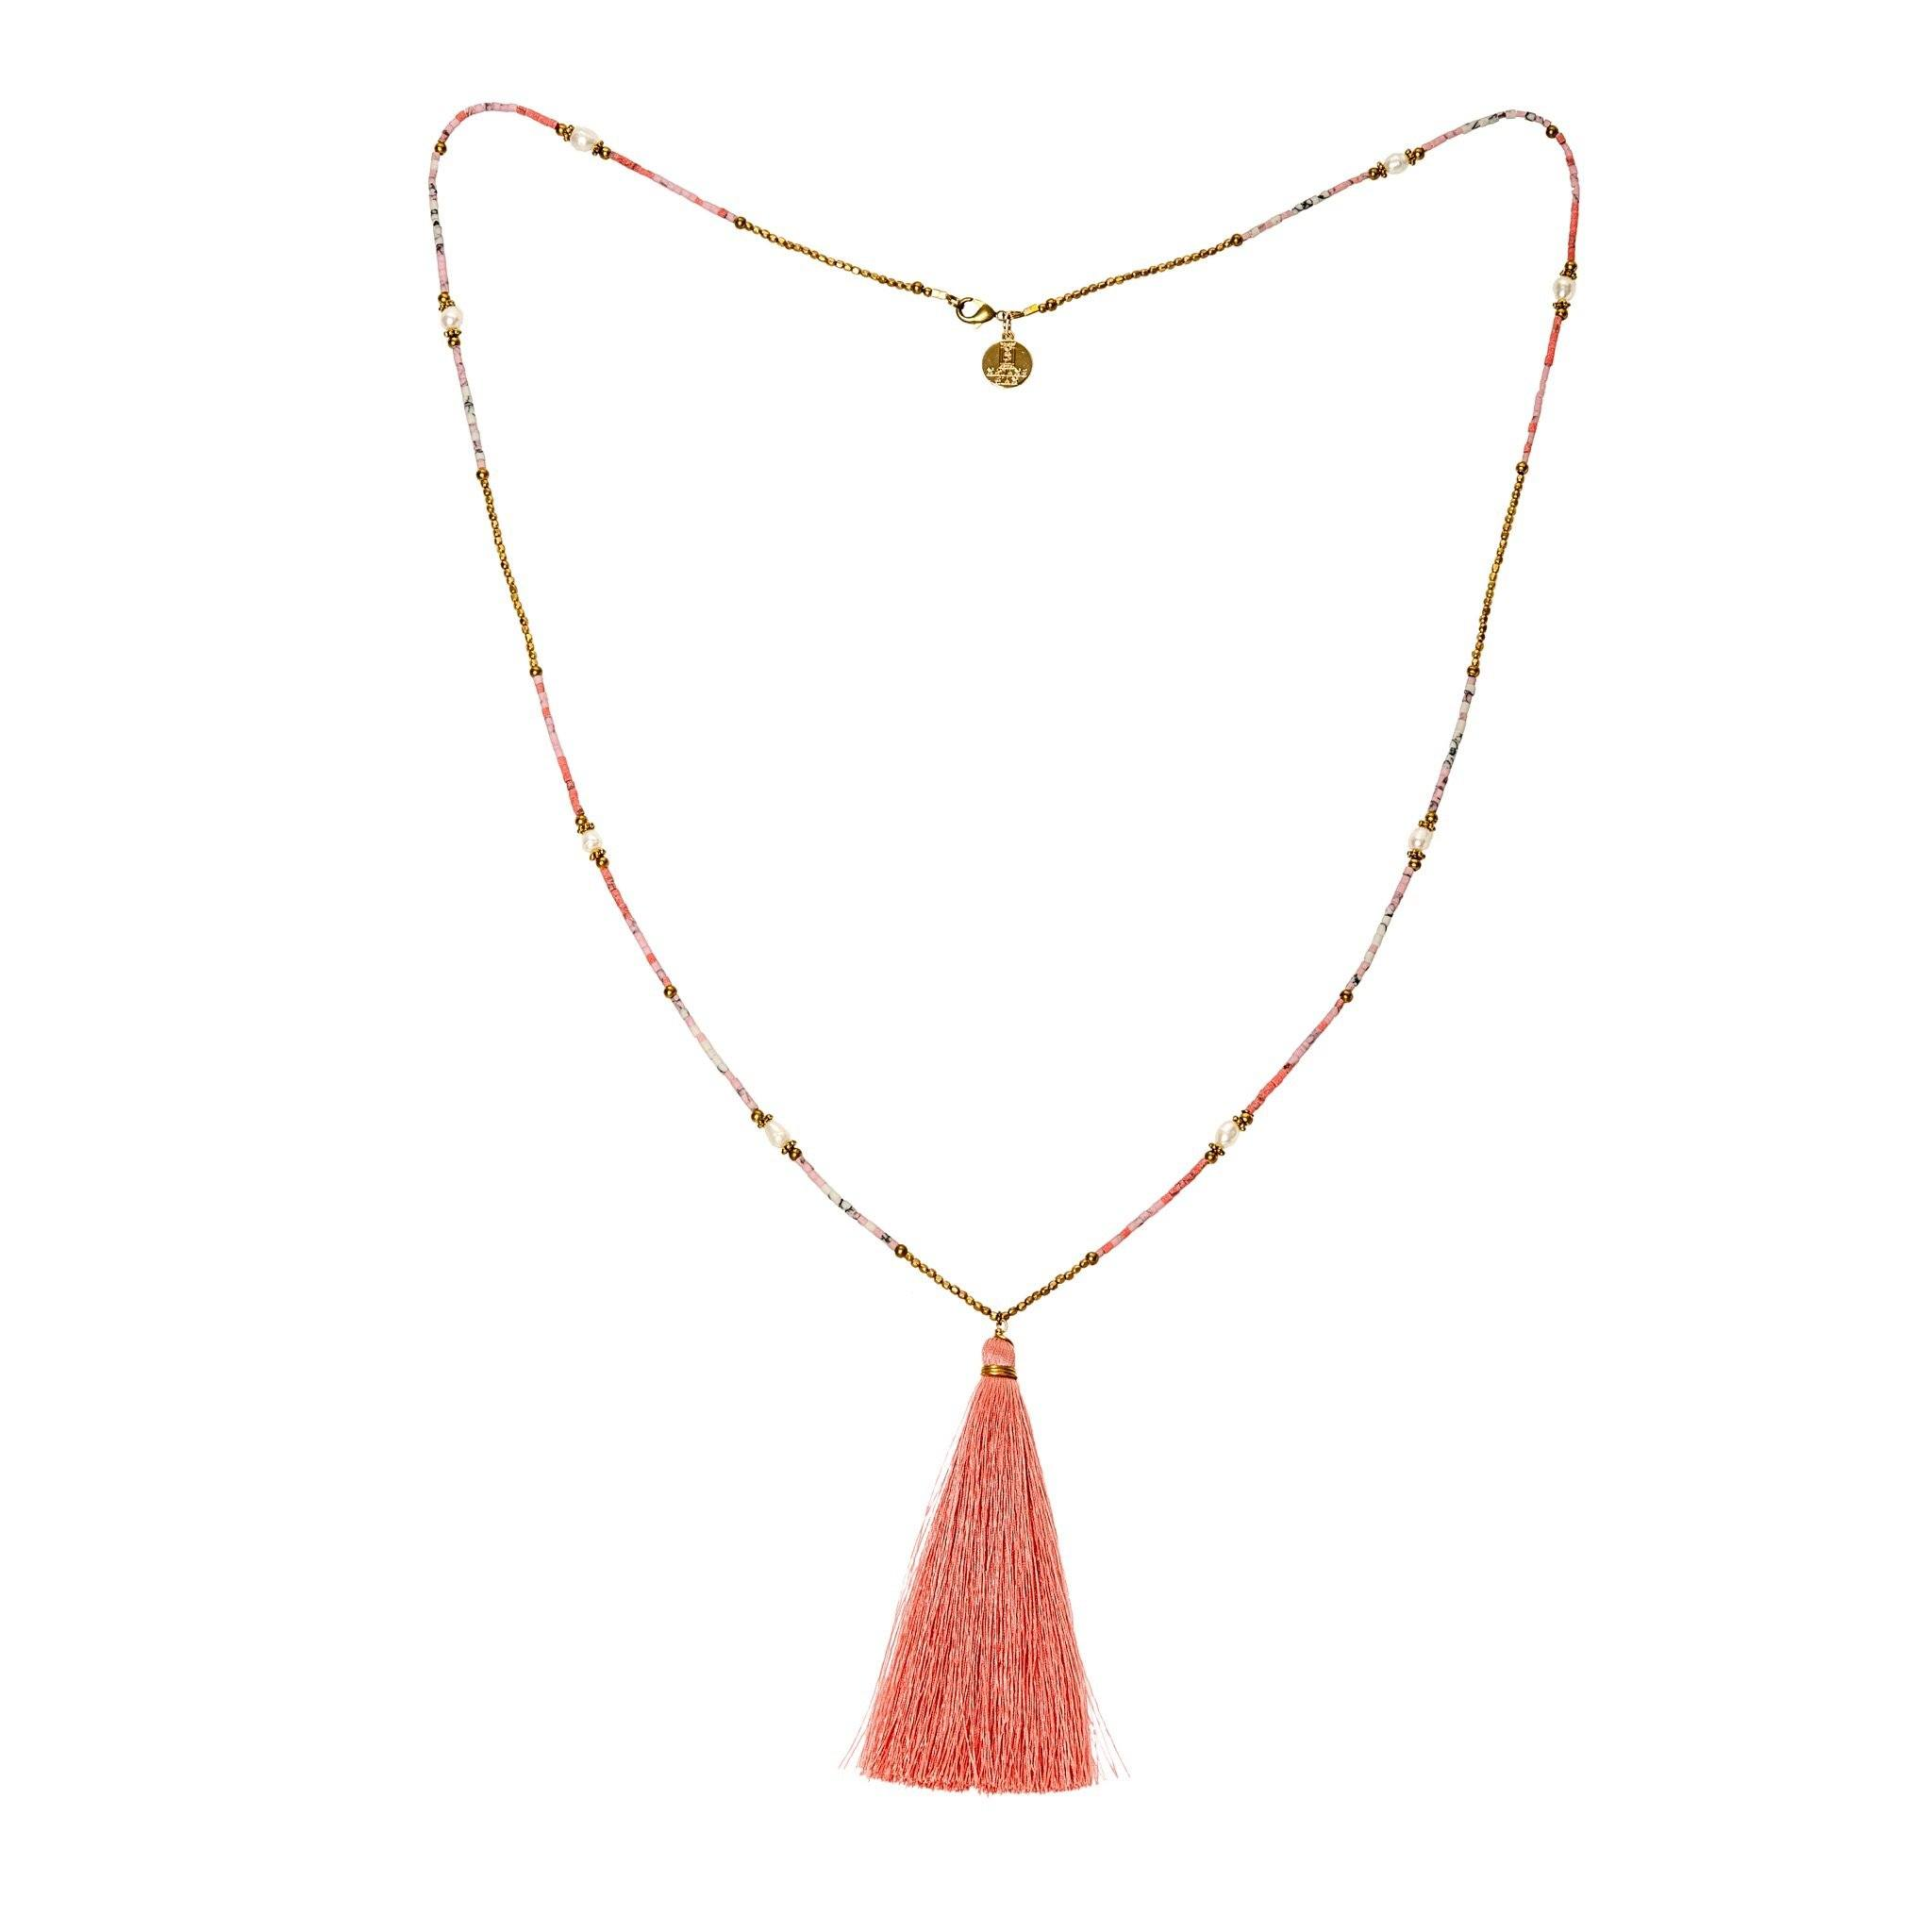 PLAYA pink tassel necklace